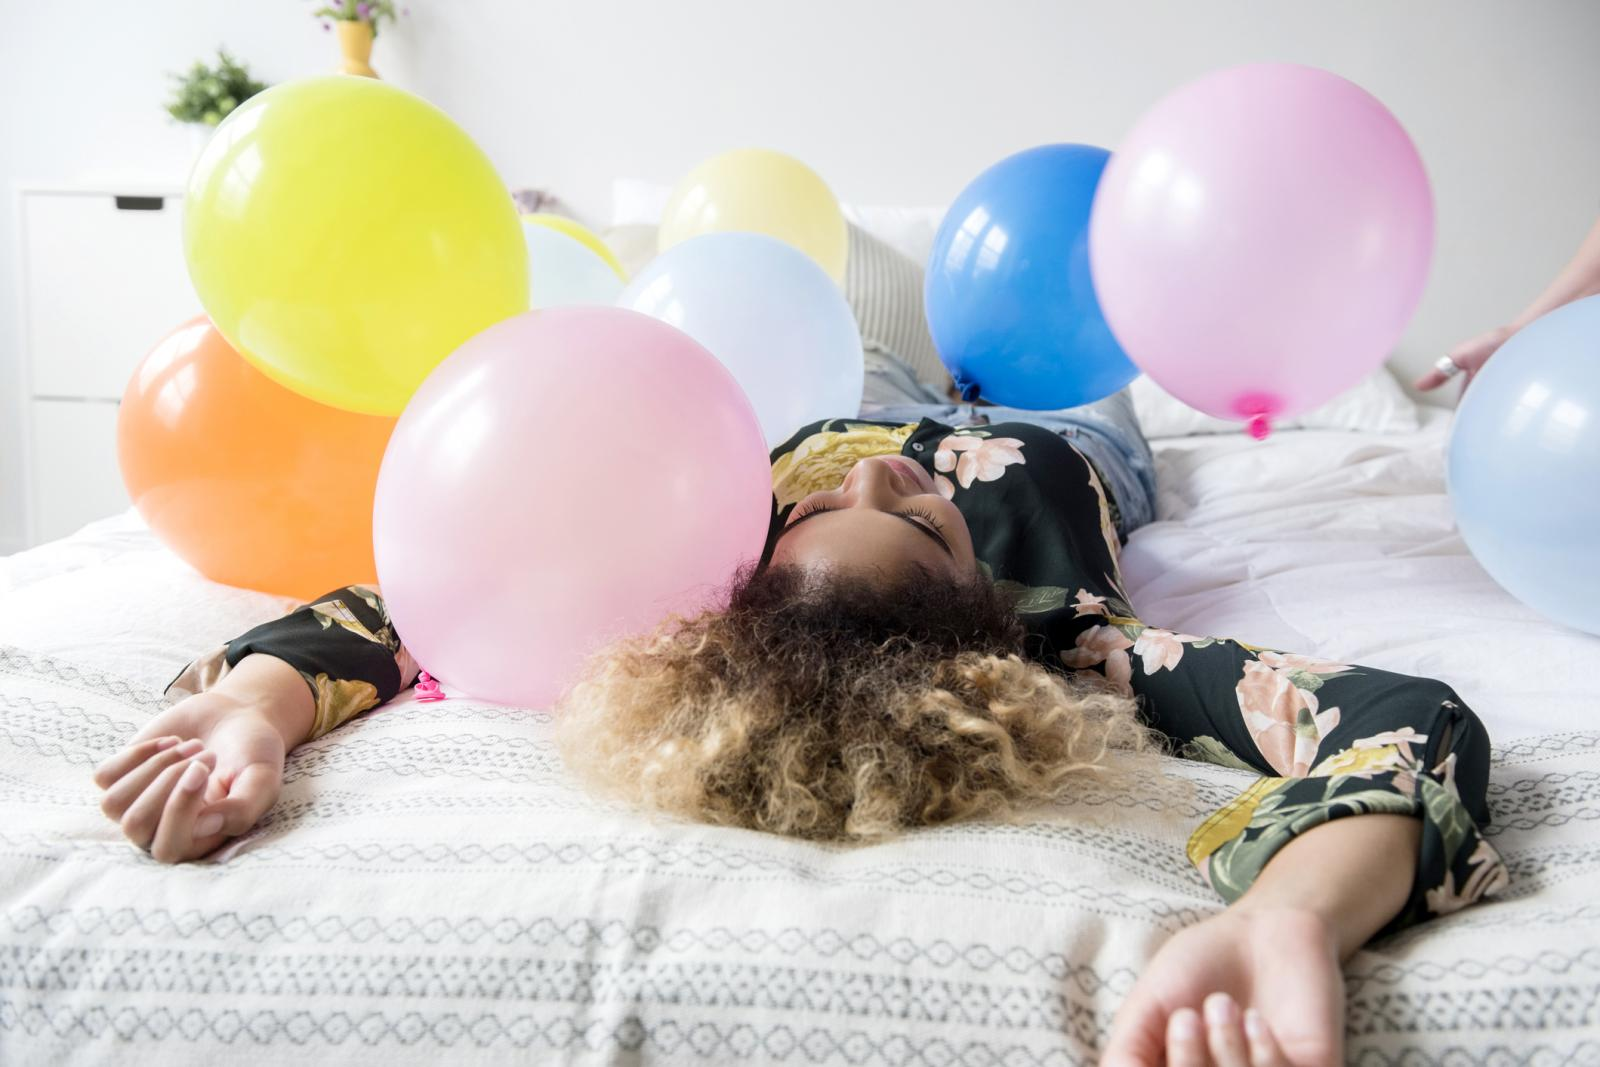 Mixed Race woman sitting on bed covered with balloons